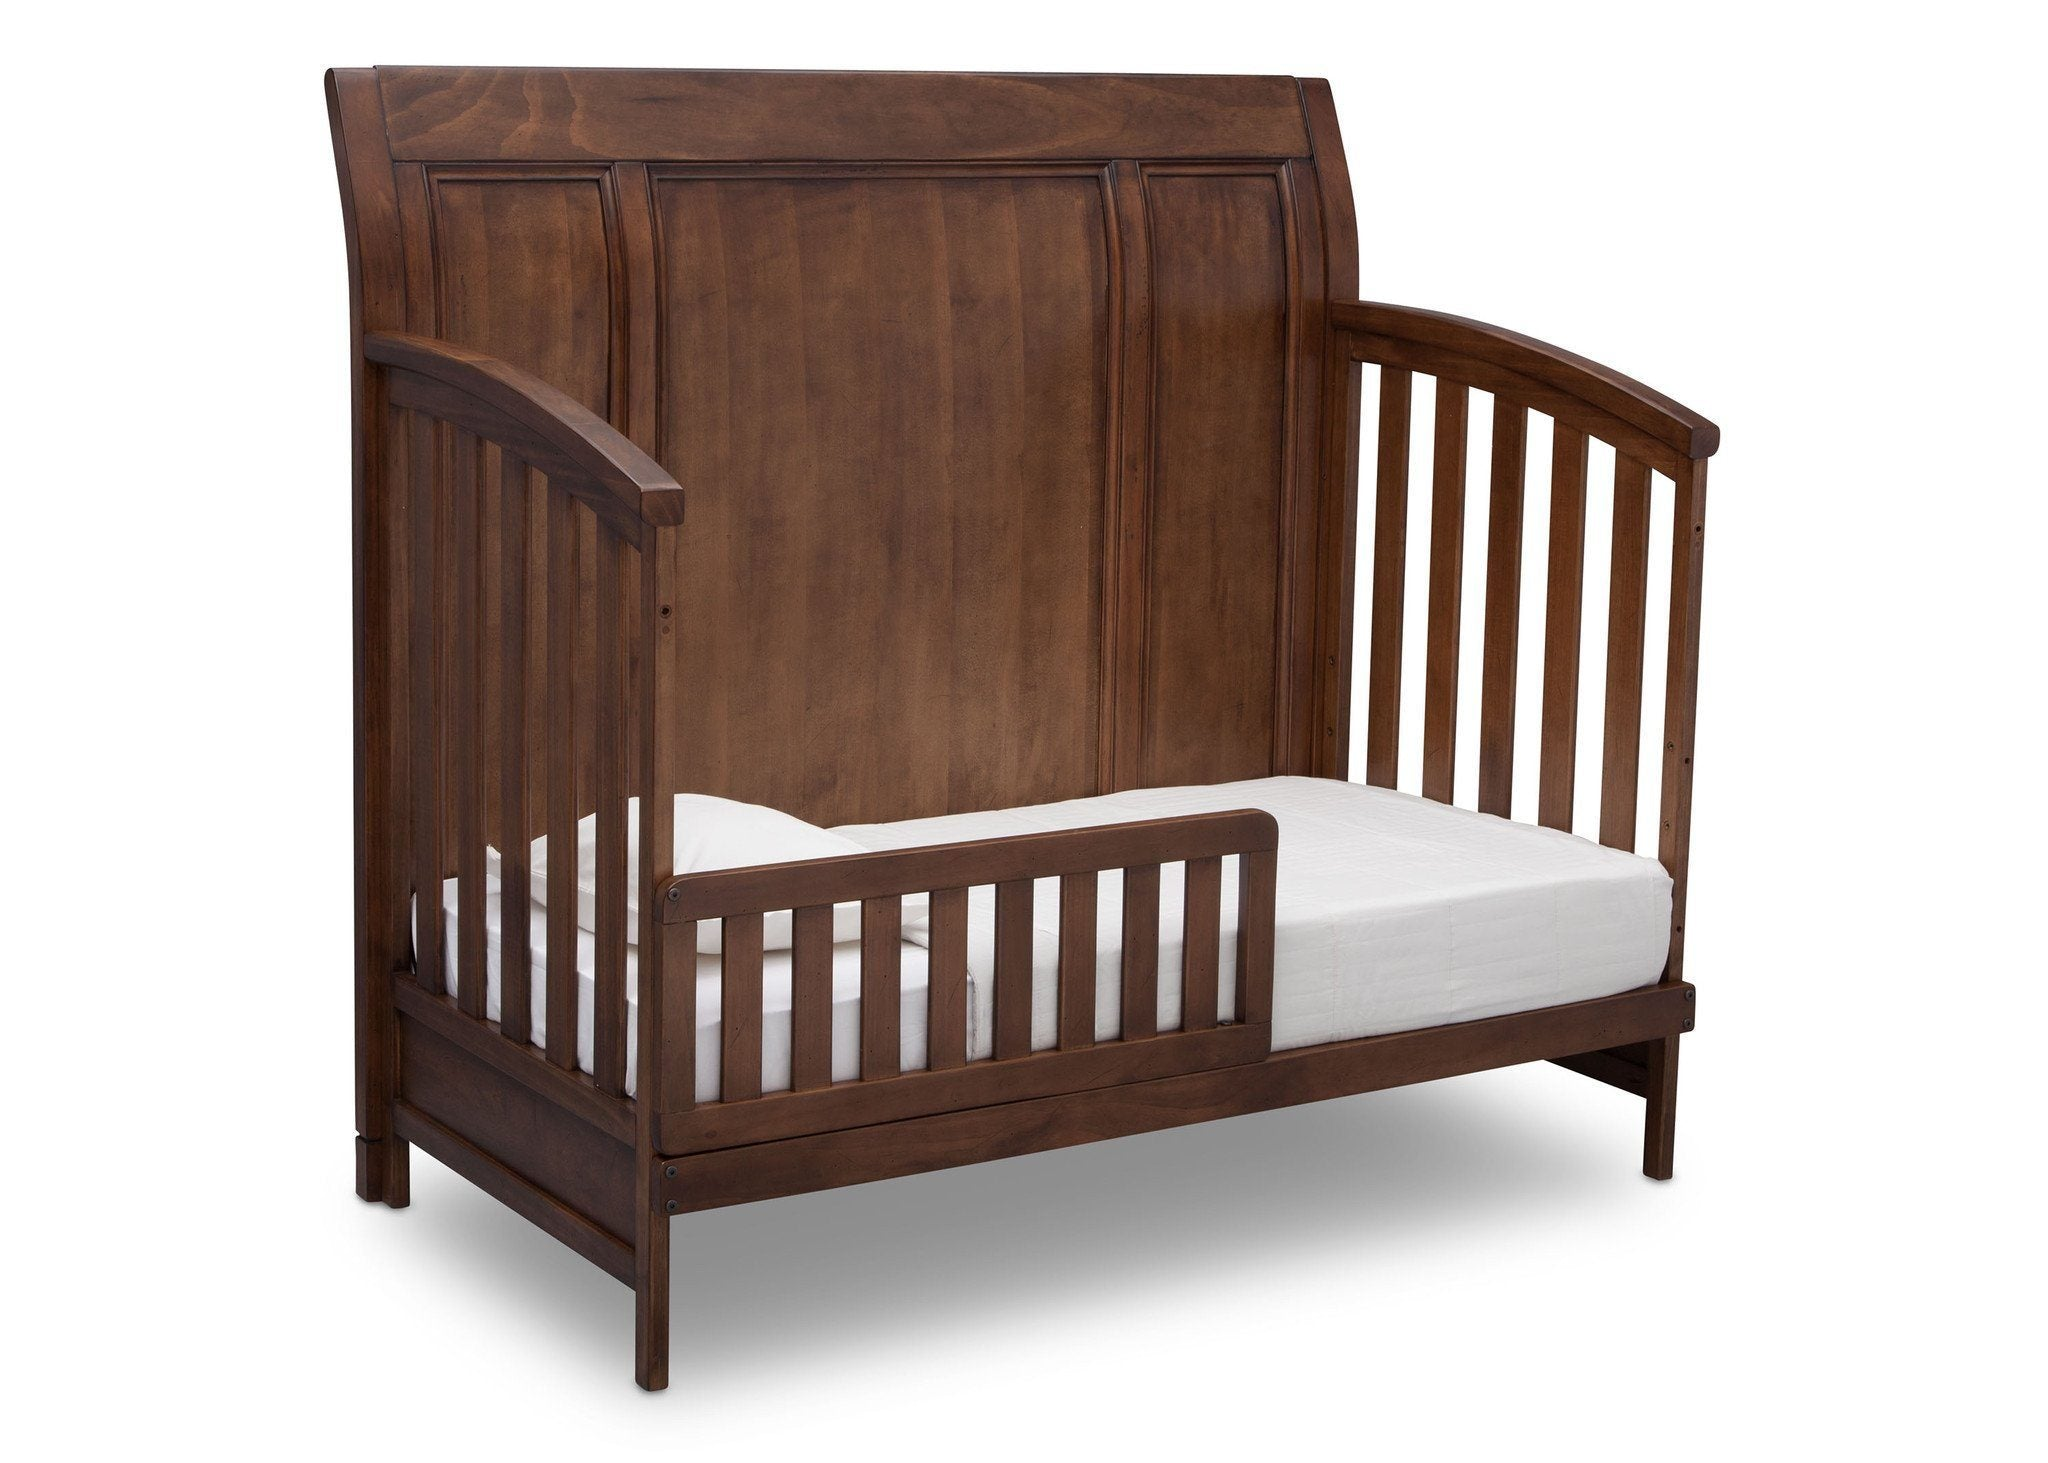 Simmons Kids Antique Chestnut (2100) Kingsley Crib 'N' More, Toddler Bed Conversion b4b